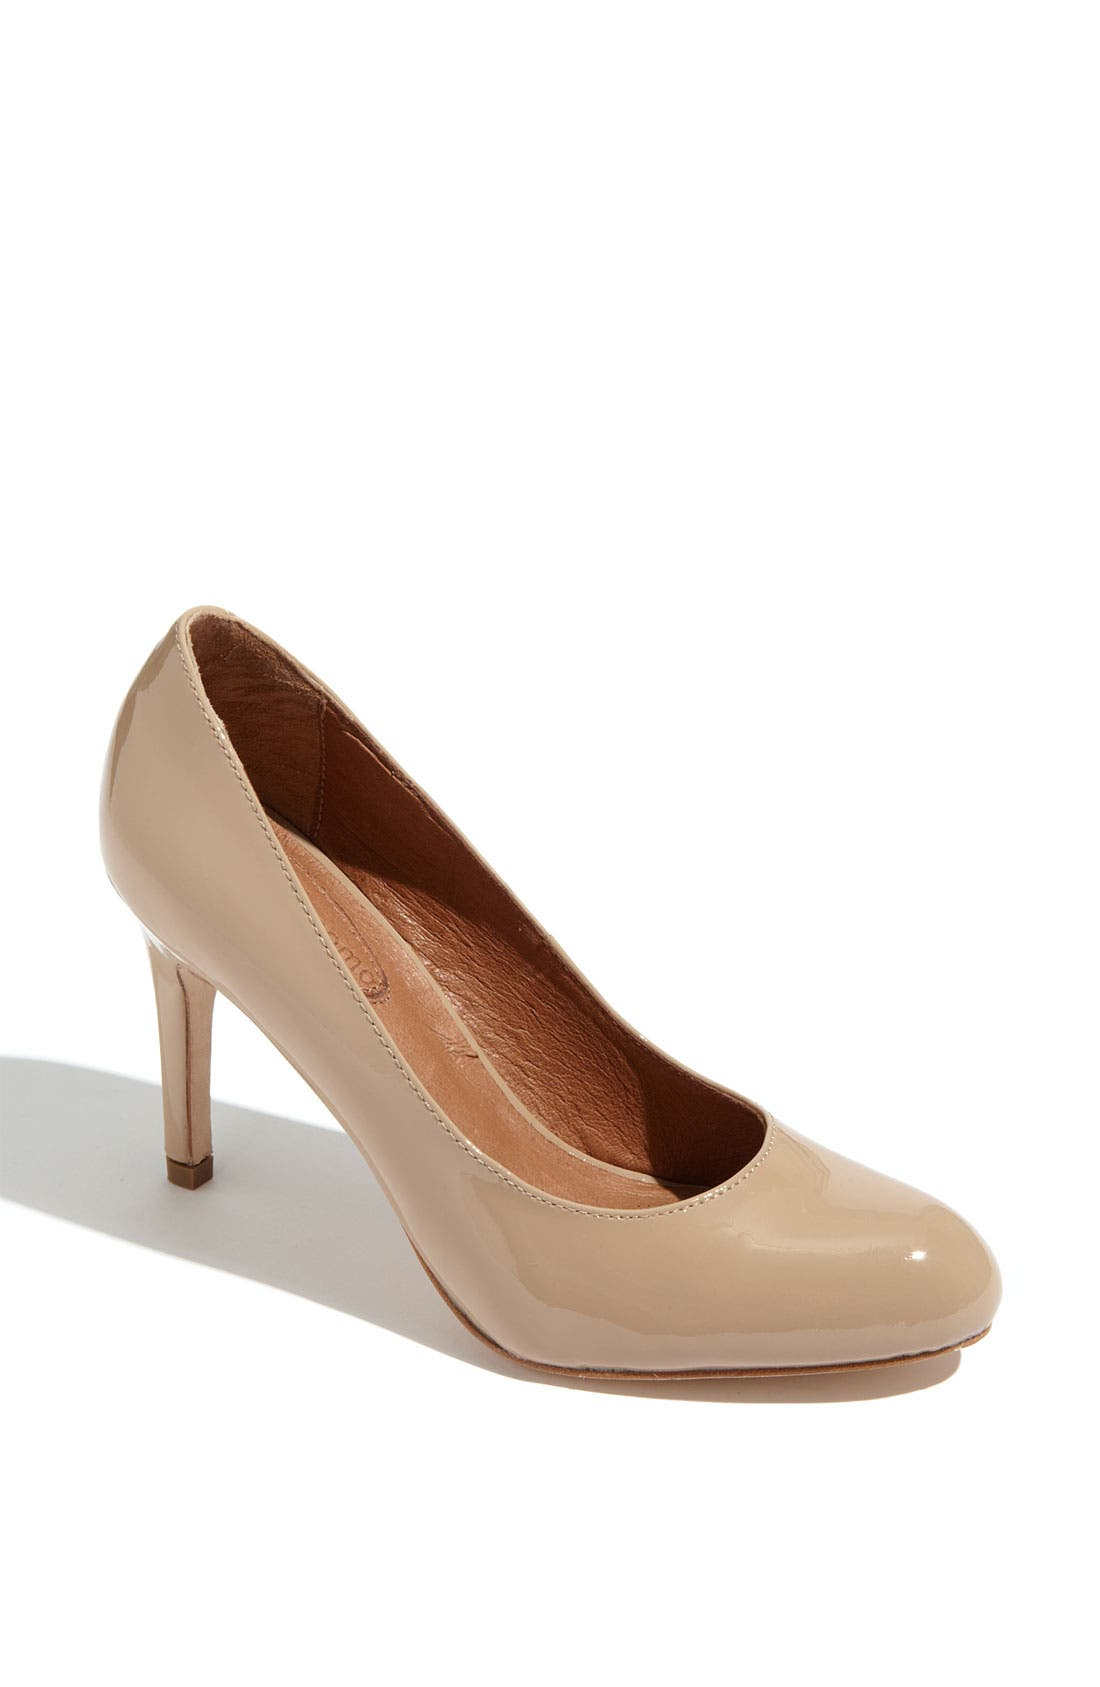 Alternate Image 1 Selected - Corso Como 'Del' Pump (Women)